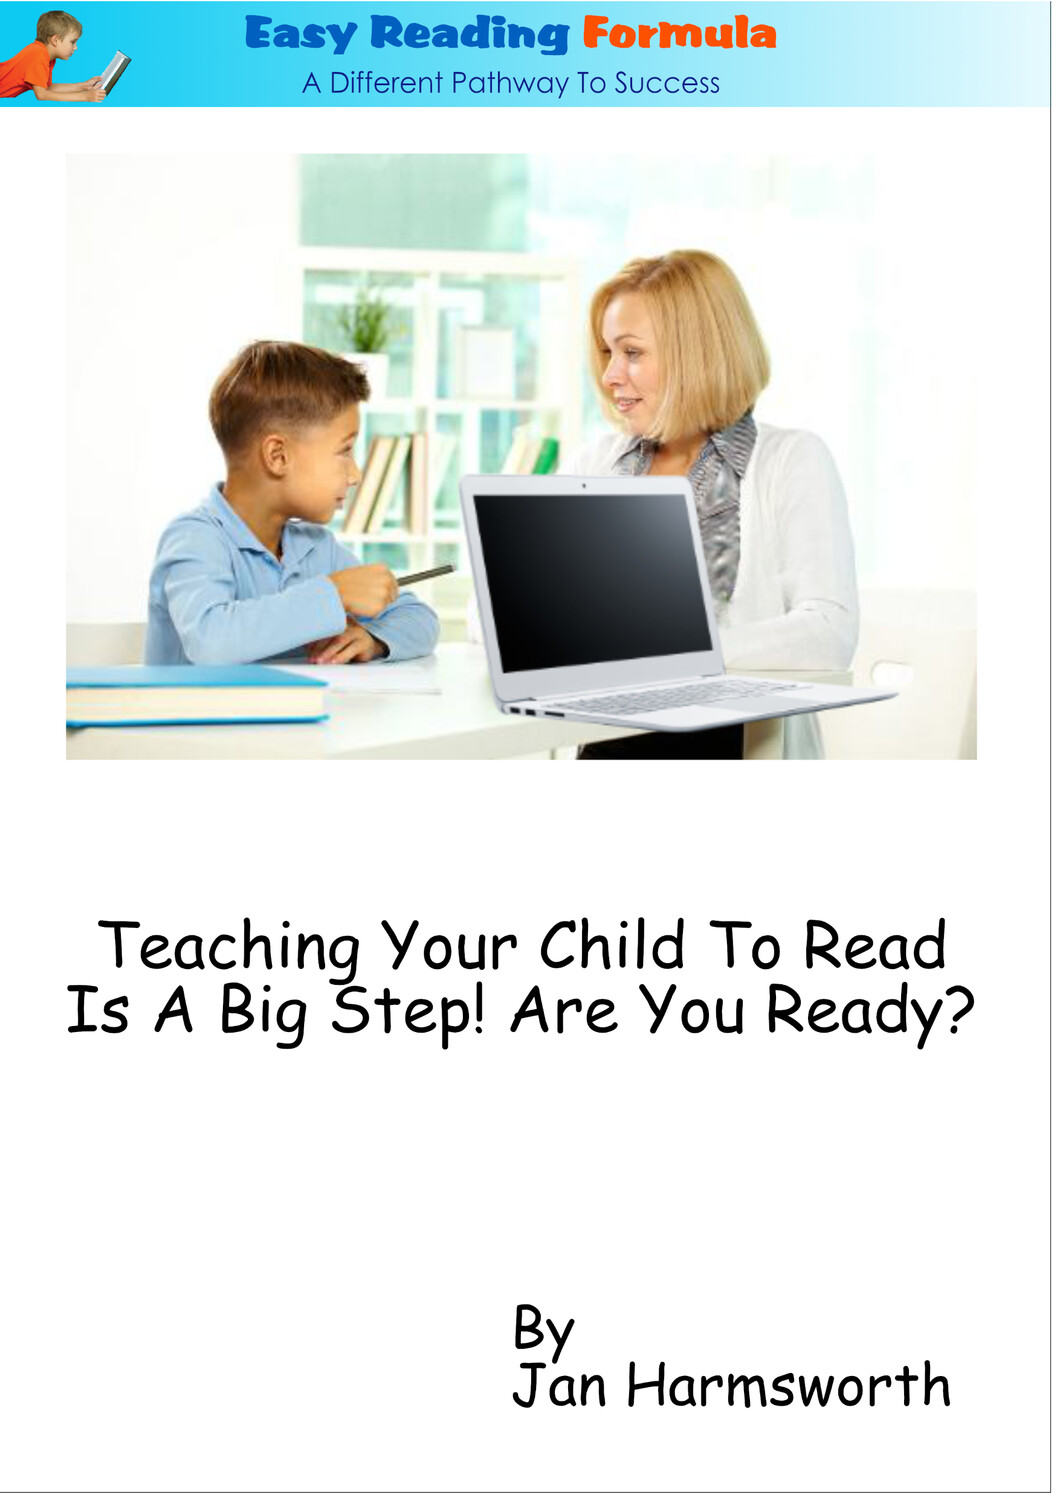 Teaching Your Child To Read Is A Big Step. Are You Ready?